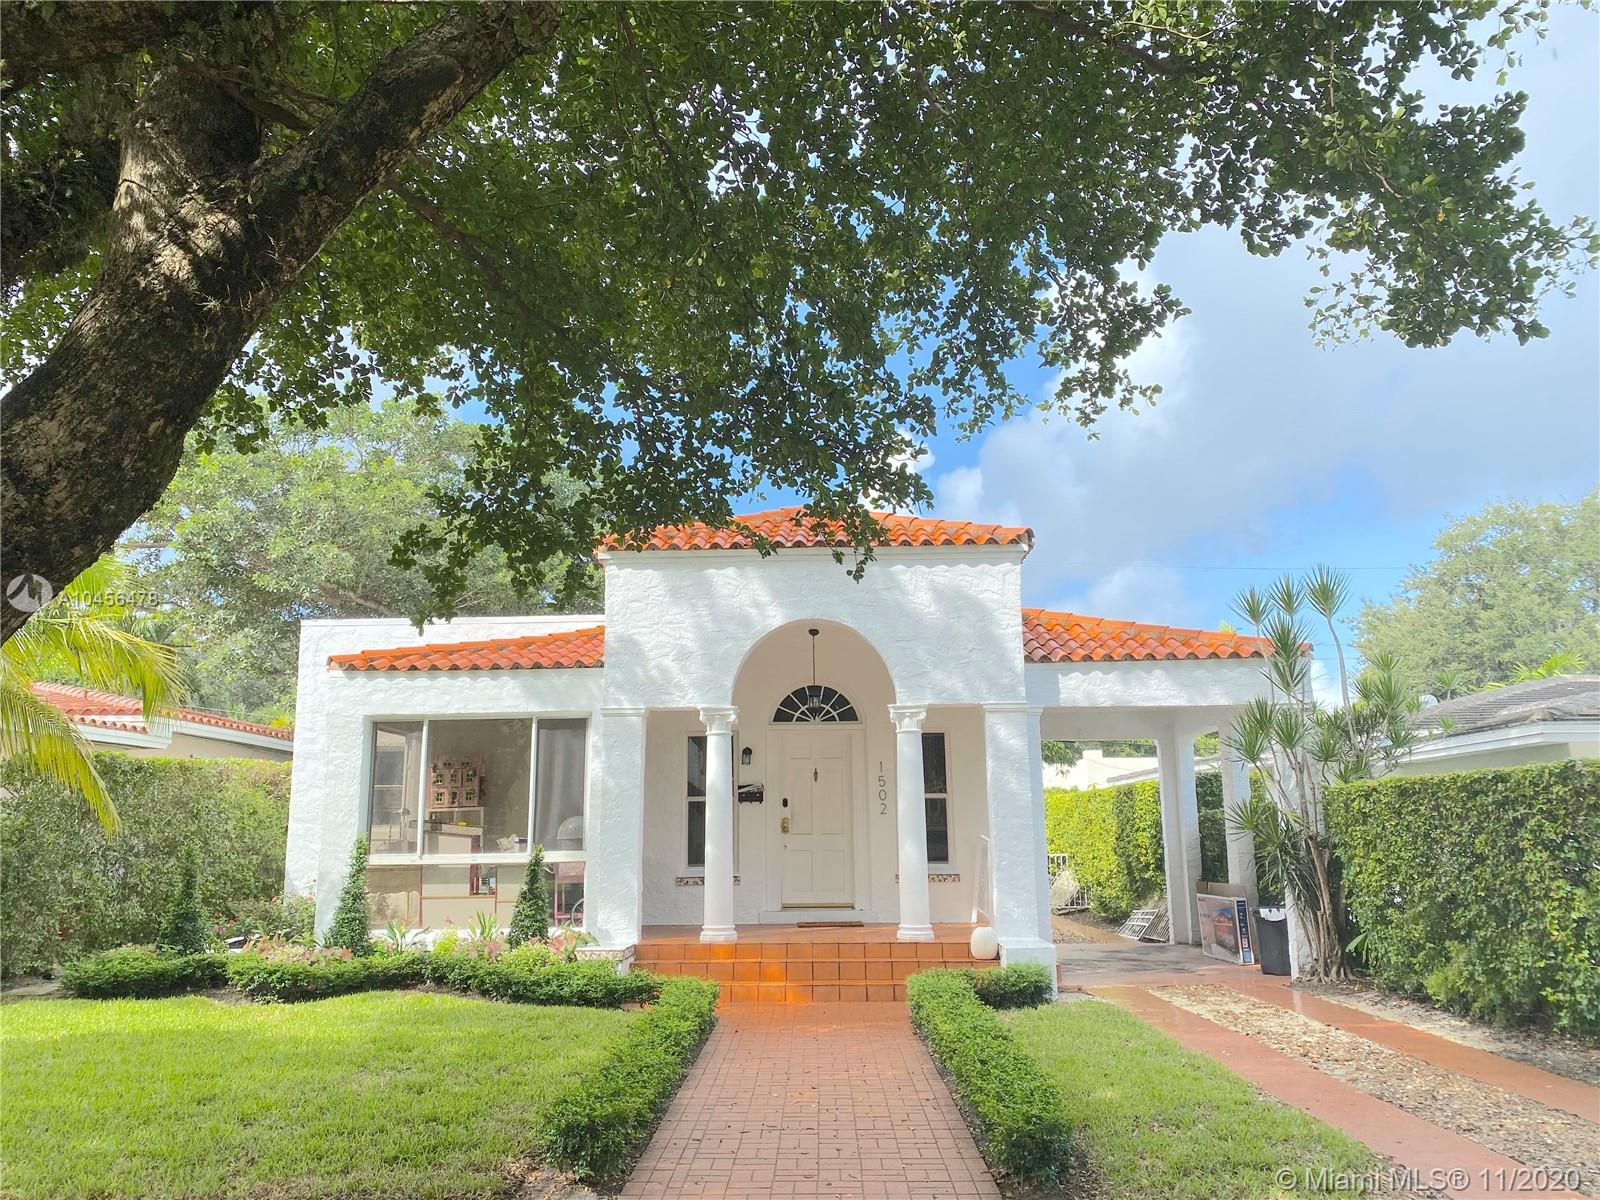 Details for 1502 Tunis St, Coral Gables, FL 33134